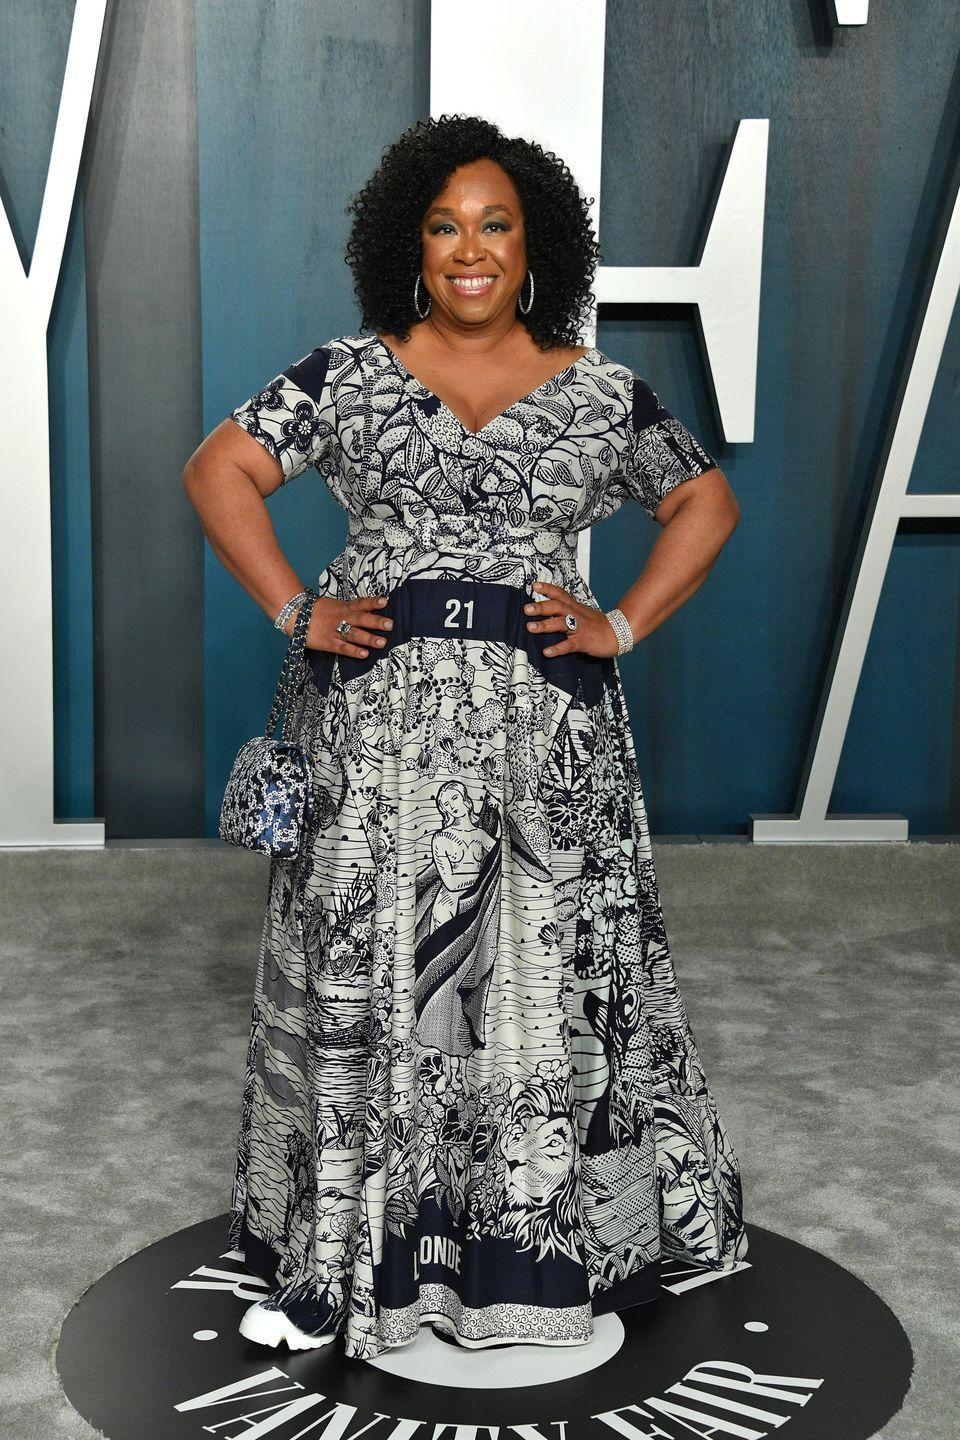 """<p>Creator of <em>Grey's Anatomy </em>and <em>Scandal</em> Shonda Rhimes didn't lose weight to meet a certain beauty standard, she did it to feel her best internally. """"I did it because I could not walk up a short flight upstairs without stopping to take a break and wiping sweat from my brow. I did it because my body was physically rebelling against the brain that had been ignoring it for so long,"""" Rhimes wrote in her newsletter, <em>Shondaland</em>, per <em><a href=""""https://www.health.com/weight-loss/shonda-rhimes-weight-loss"""" rel=""""nofollow noopener"""" target=""""_blank"""" data-ylk=""""slk:Health"""" class=""""link rapid-noclick-resp"""">Health</a>.</em> Rhimes told <em><a href=""""https://www.eatthis.com/shonda-rhimes/"""" rel=""""nofollow noopener"""" target=""""_blank"""" data-ylk=""""slk:Eat This, Not That"""" class=""""link rapid-noclick-resp"""">Eat This, Not That</a> </em>that she hired a personal trainer and does Pilates. """"I eat everything I want to eat but I try to make it much less and smaller portions,"""" she said.</p>"""